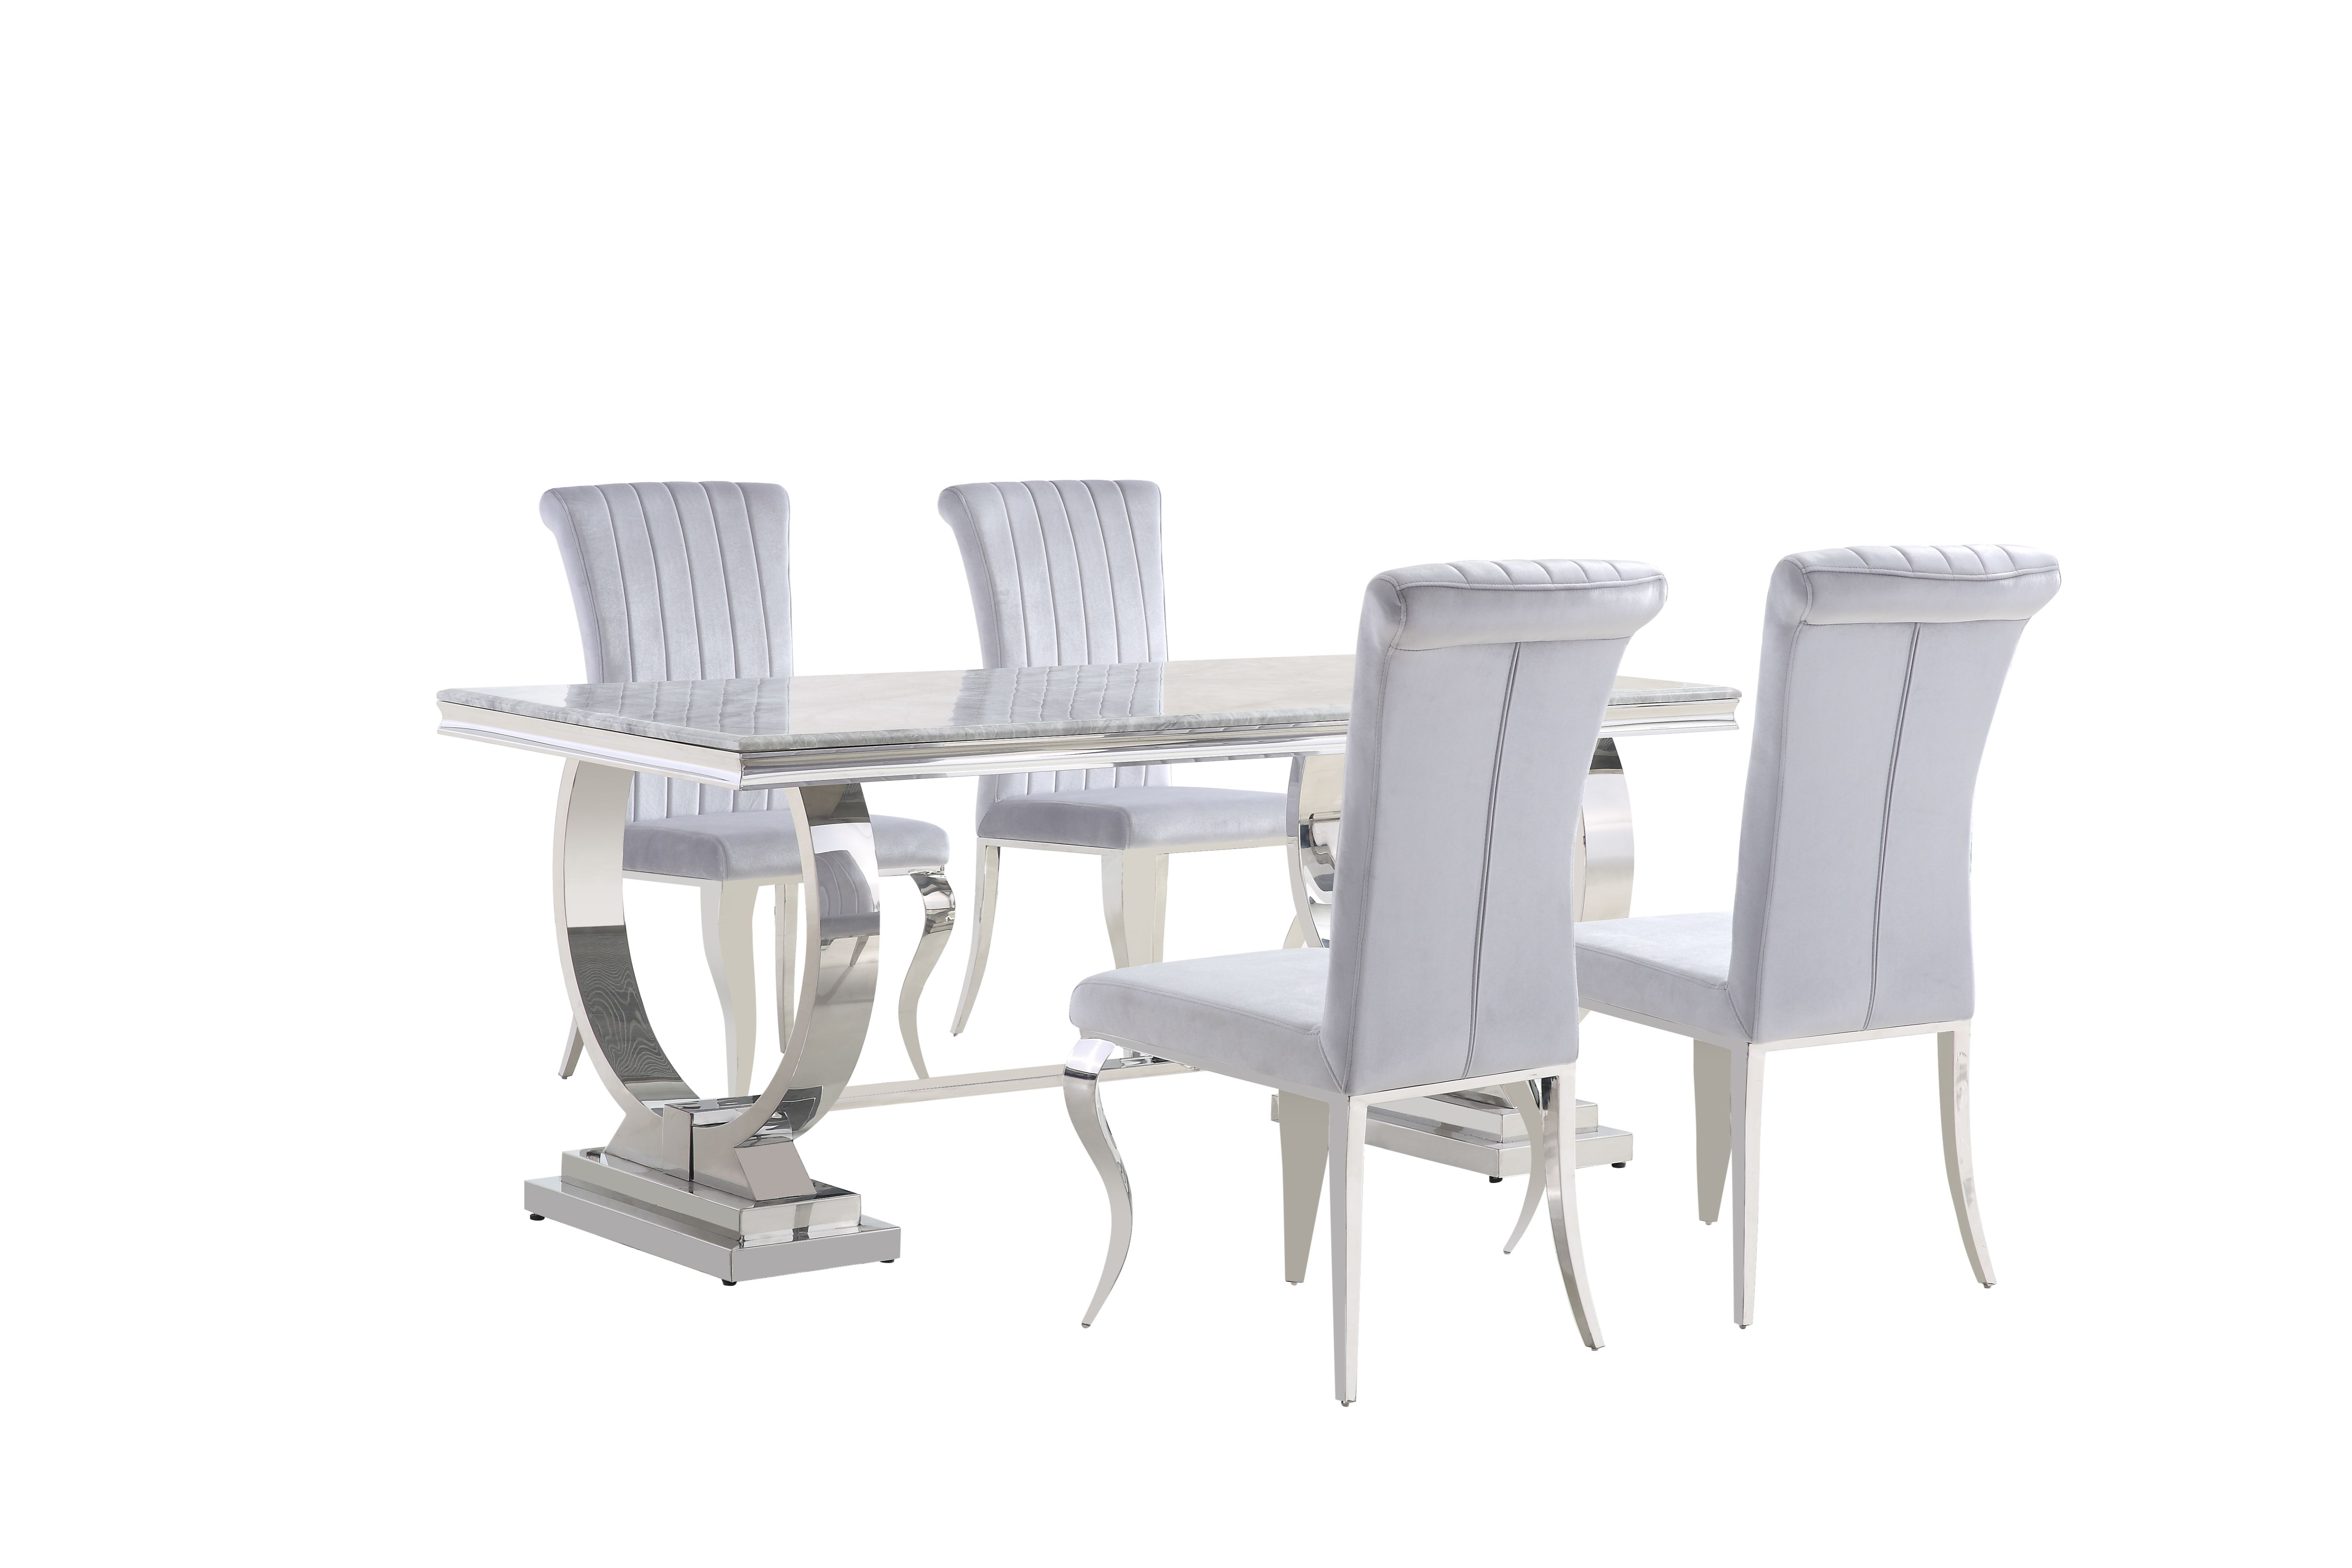 Venice Marble Table DT813MA & Liyana Grey Chair CH-891GR (Image 1)